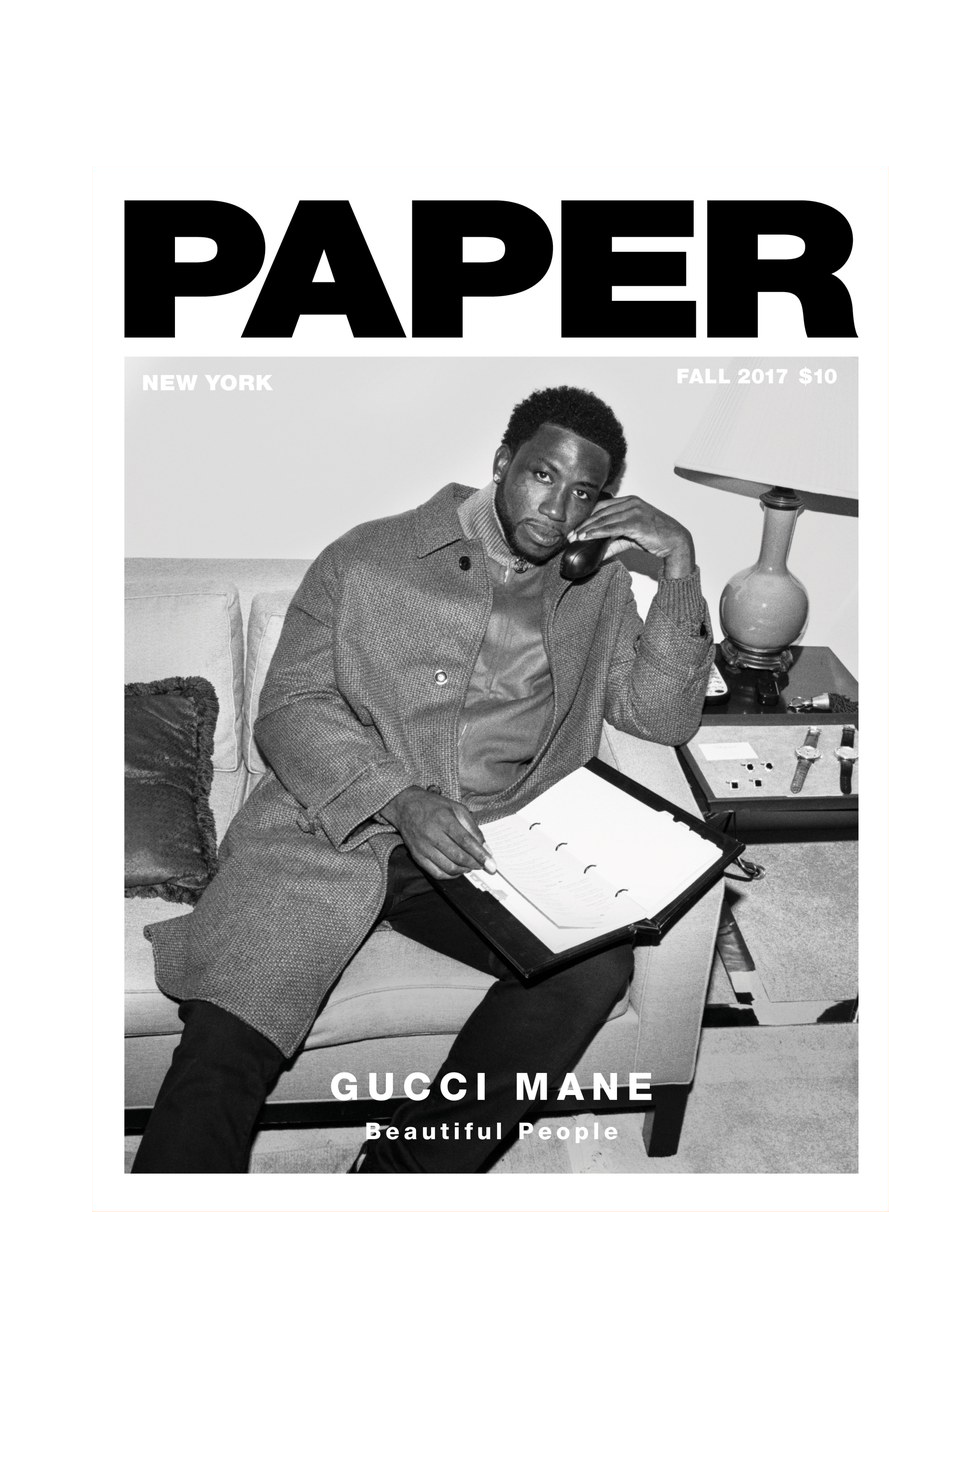 PaperMagFall17Cover.png